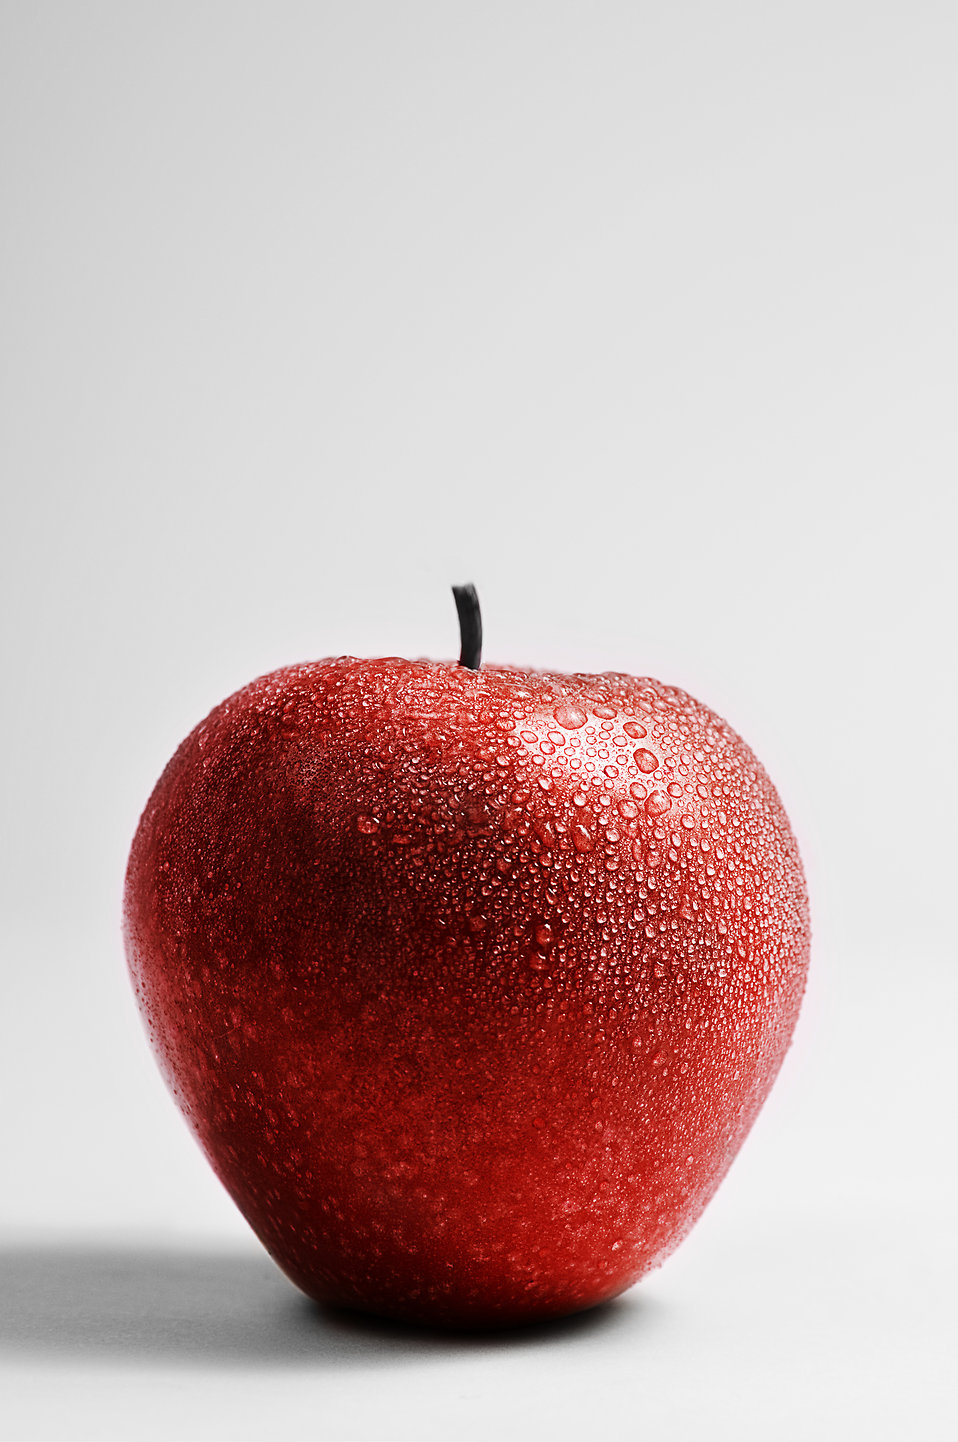 A fresh red Rome Beauty apple : Free Stock Photo